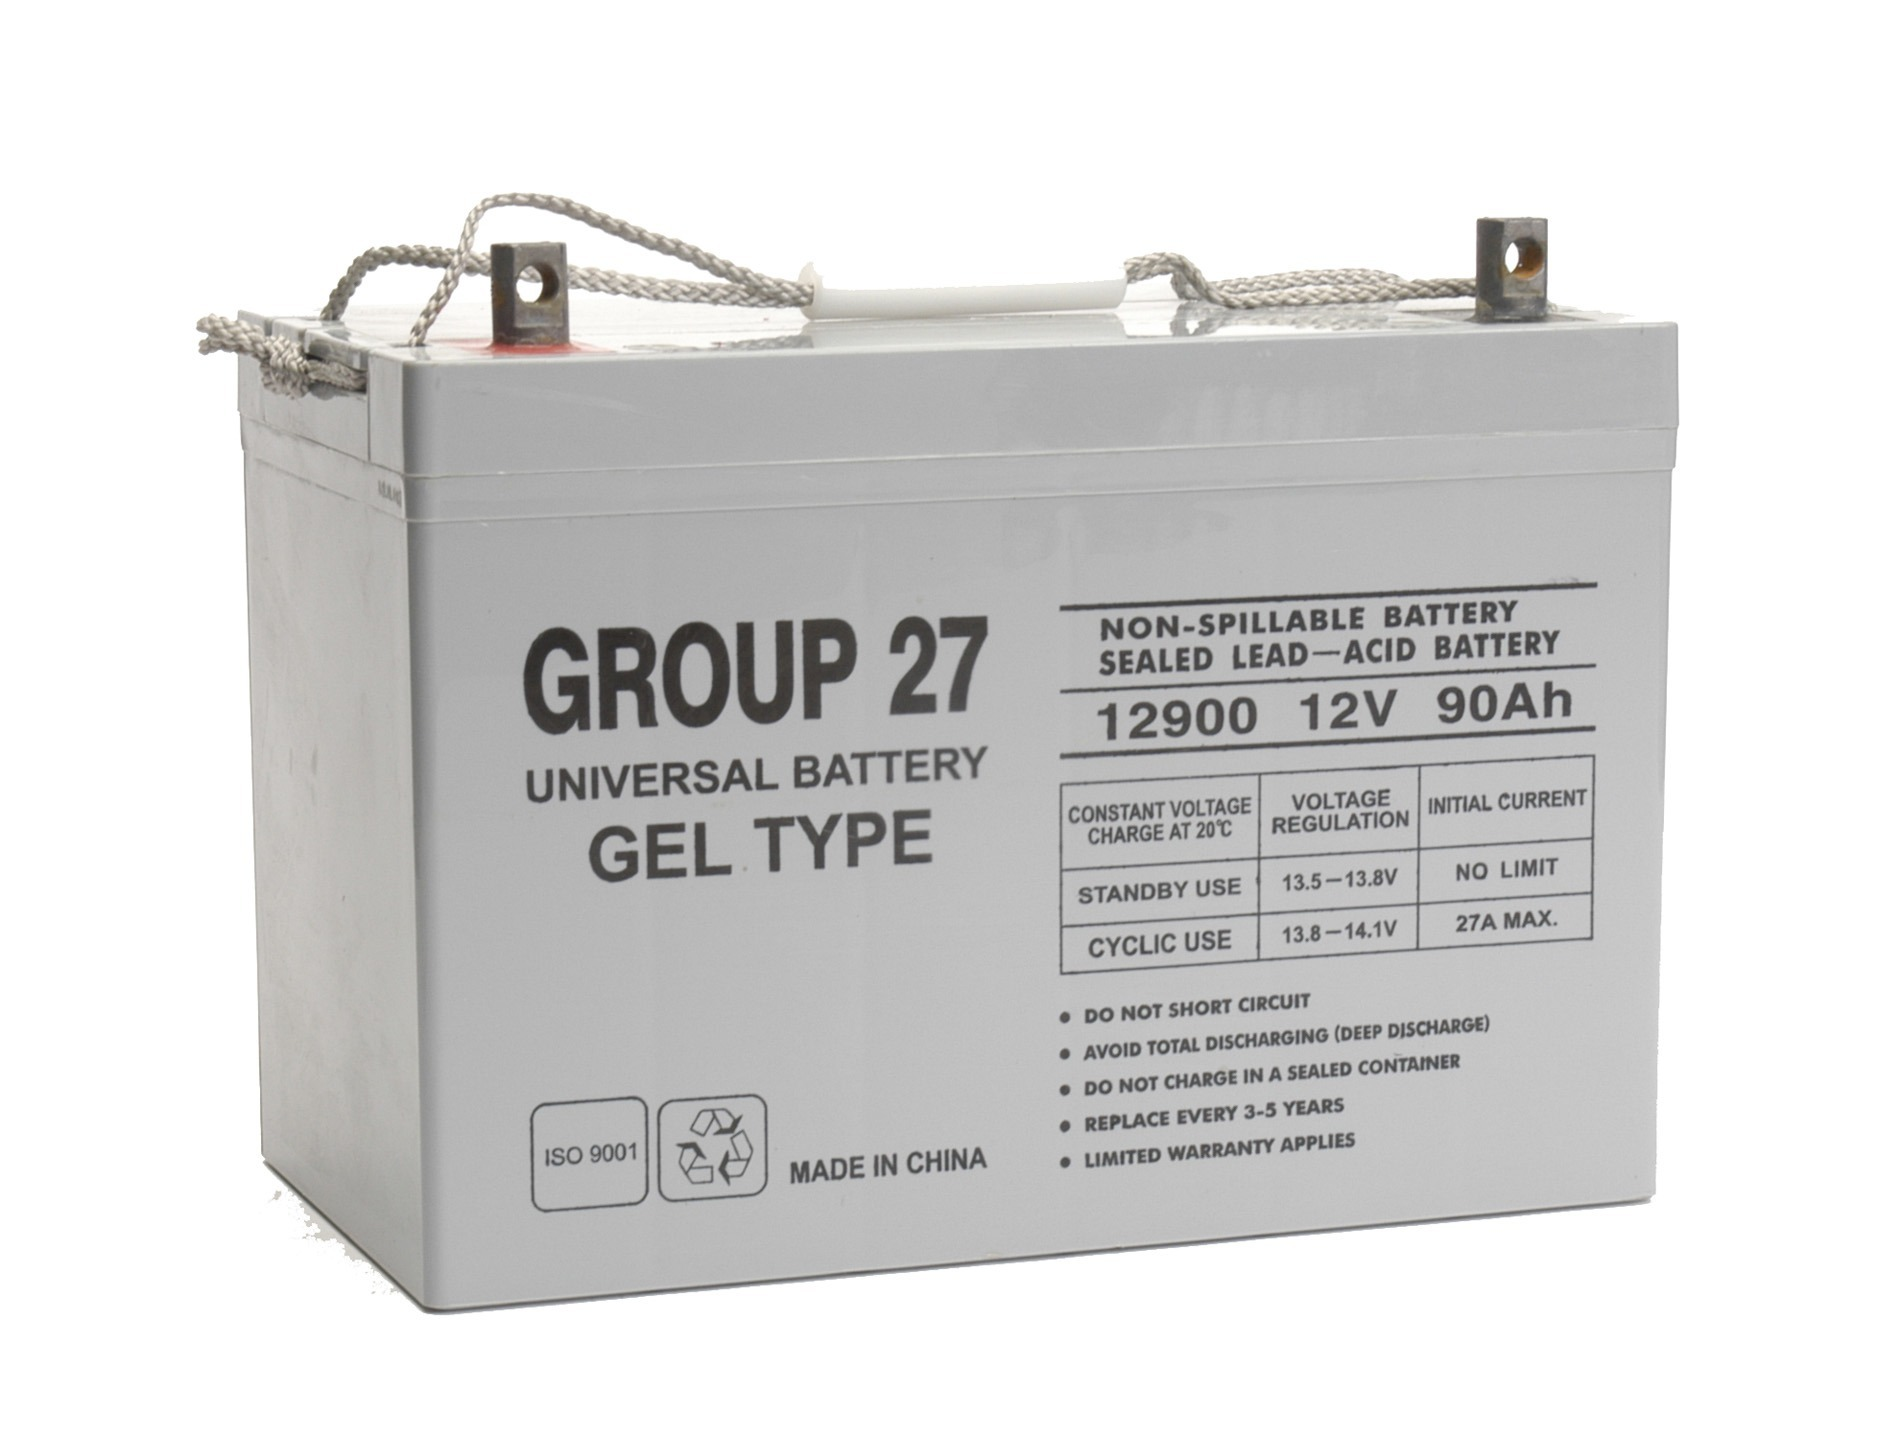 12v 90ah (Group 27) Gel Cell Battery for Opti-UPS Excal-3000